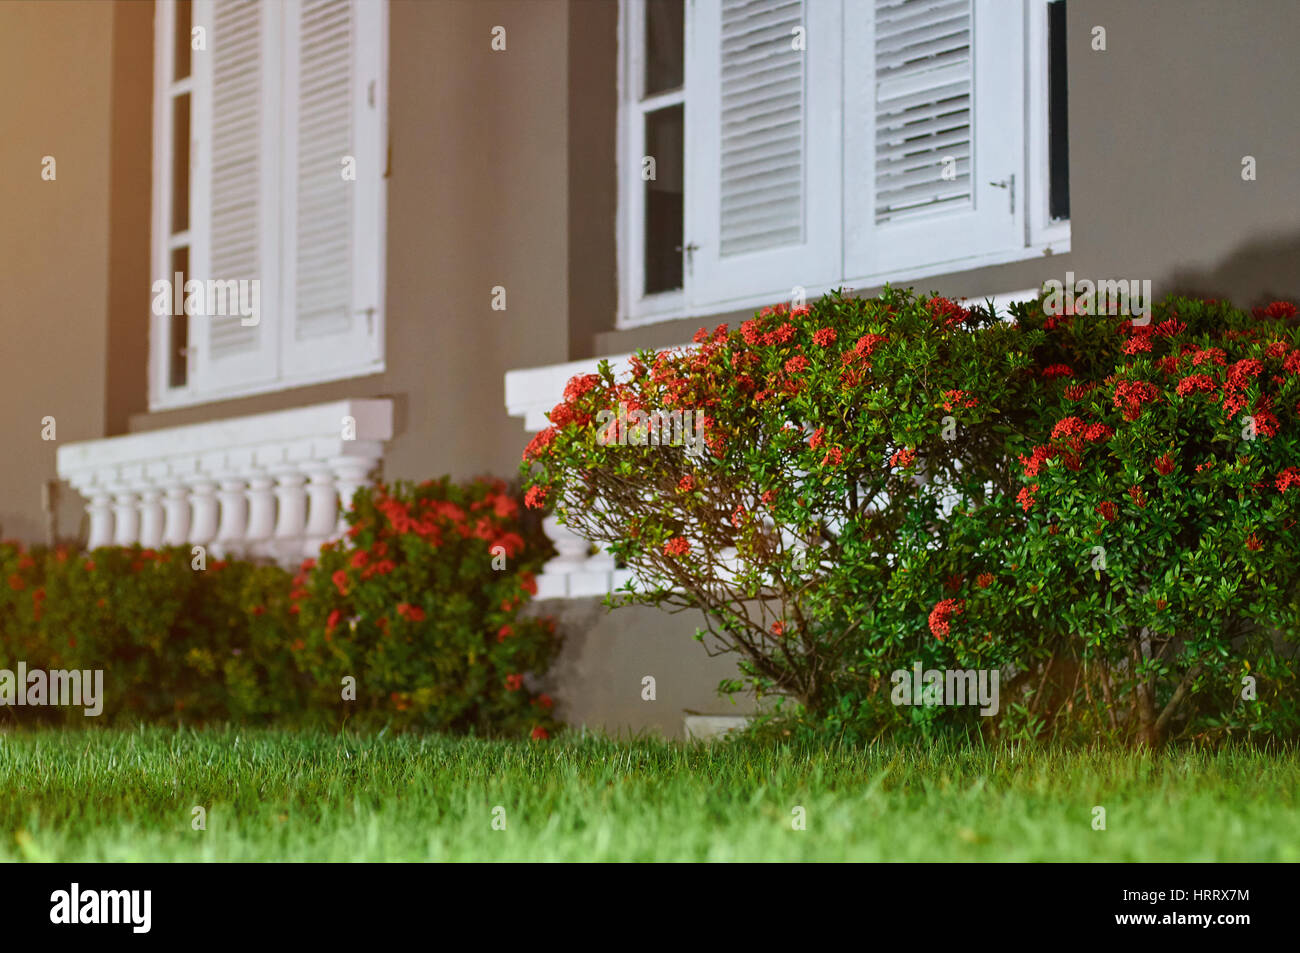 Yard with flowers infront of house. Grass lawn garden with white ...